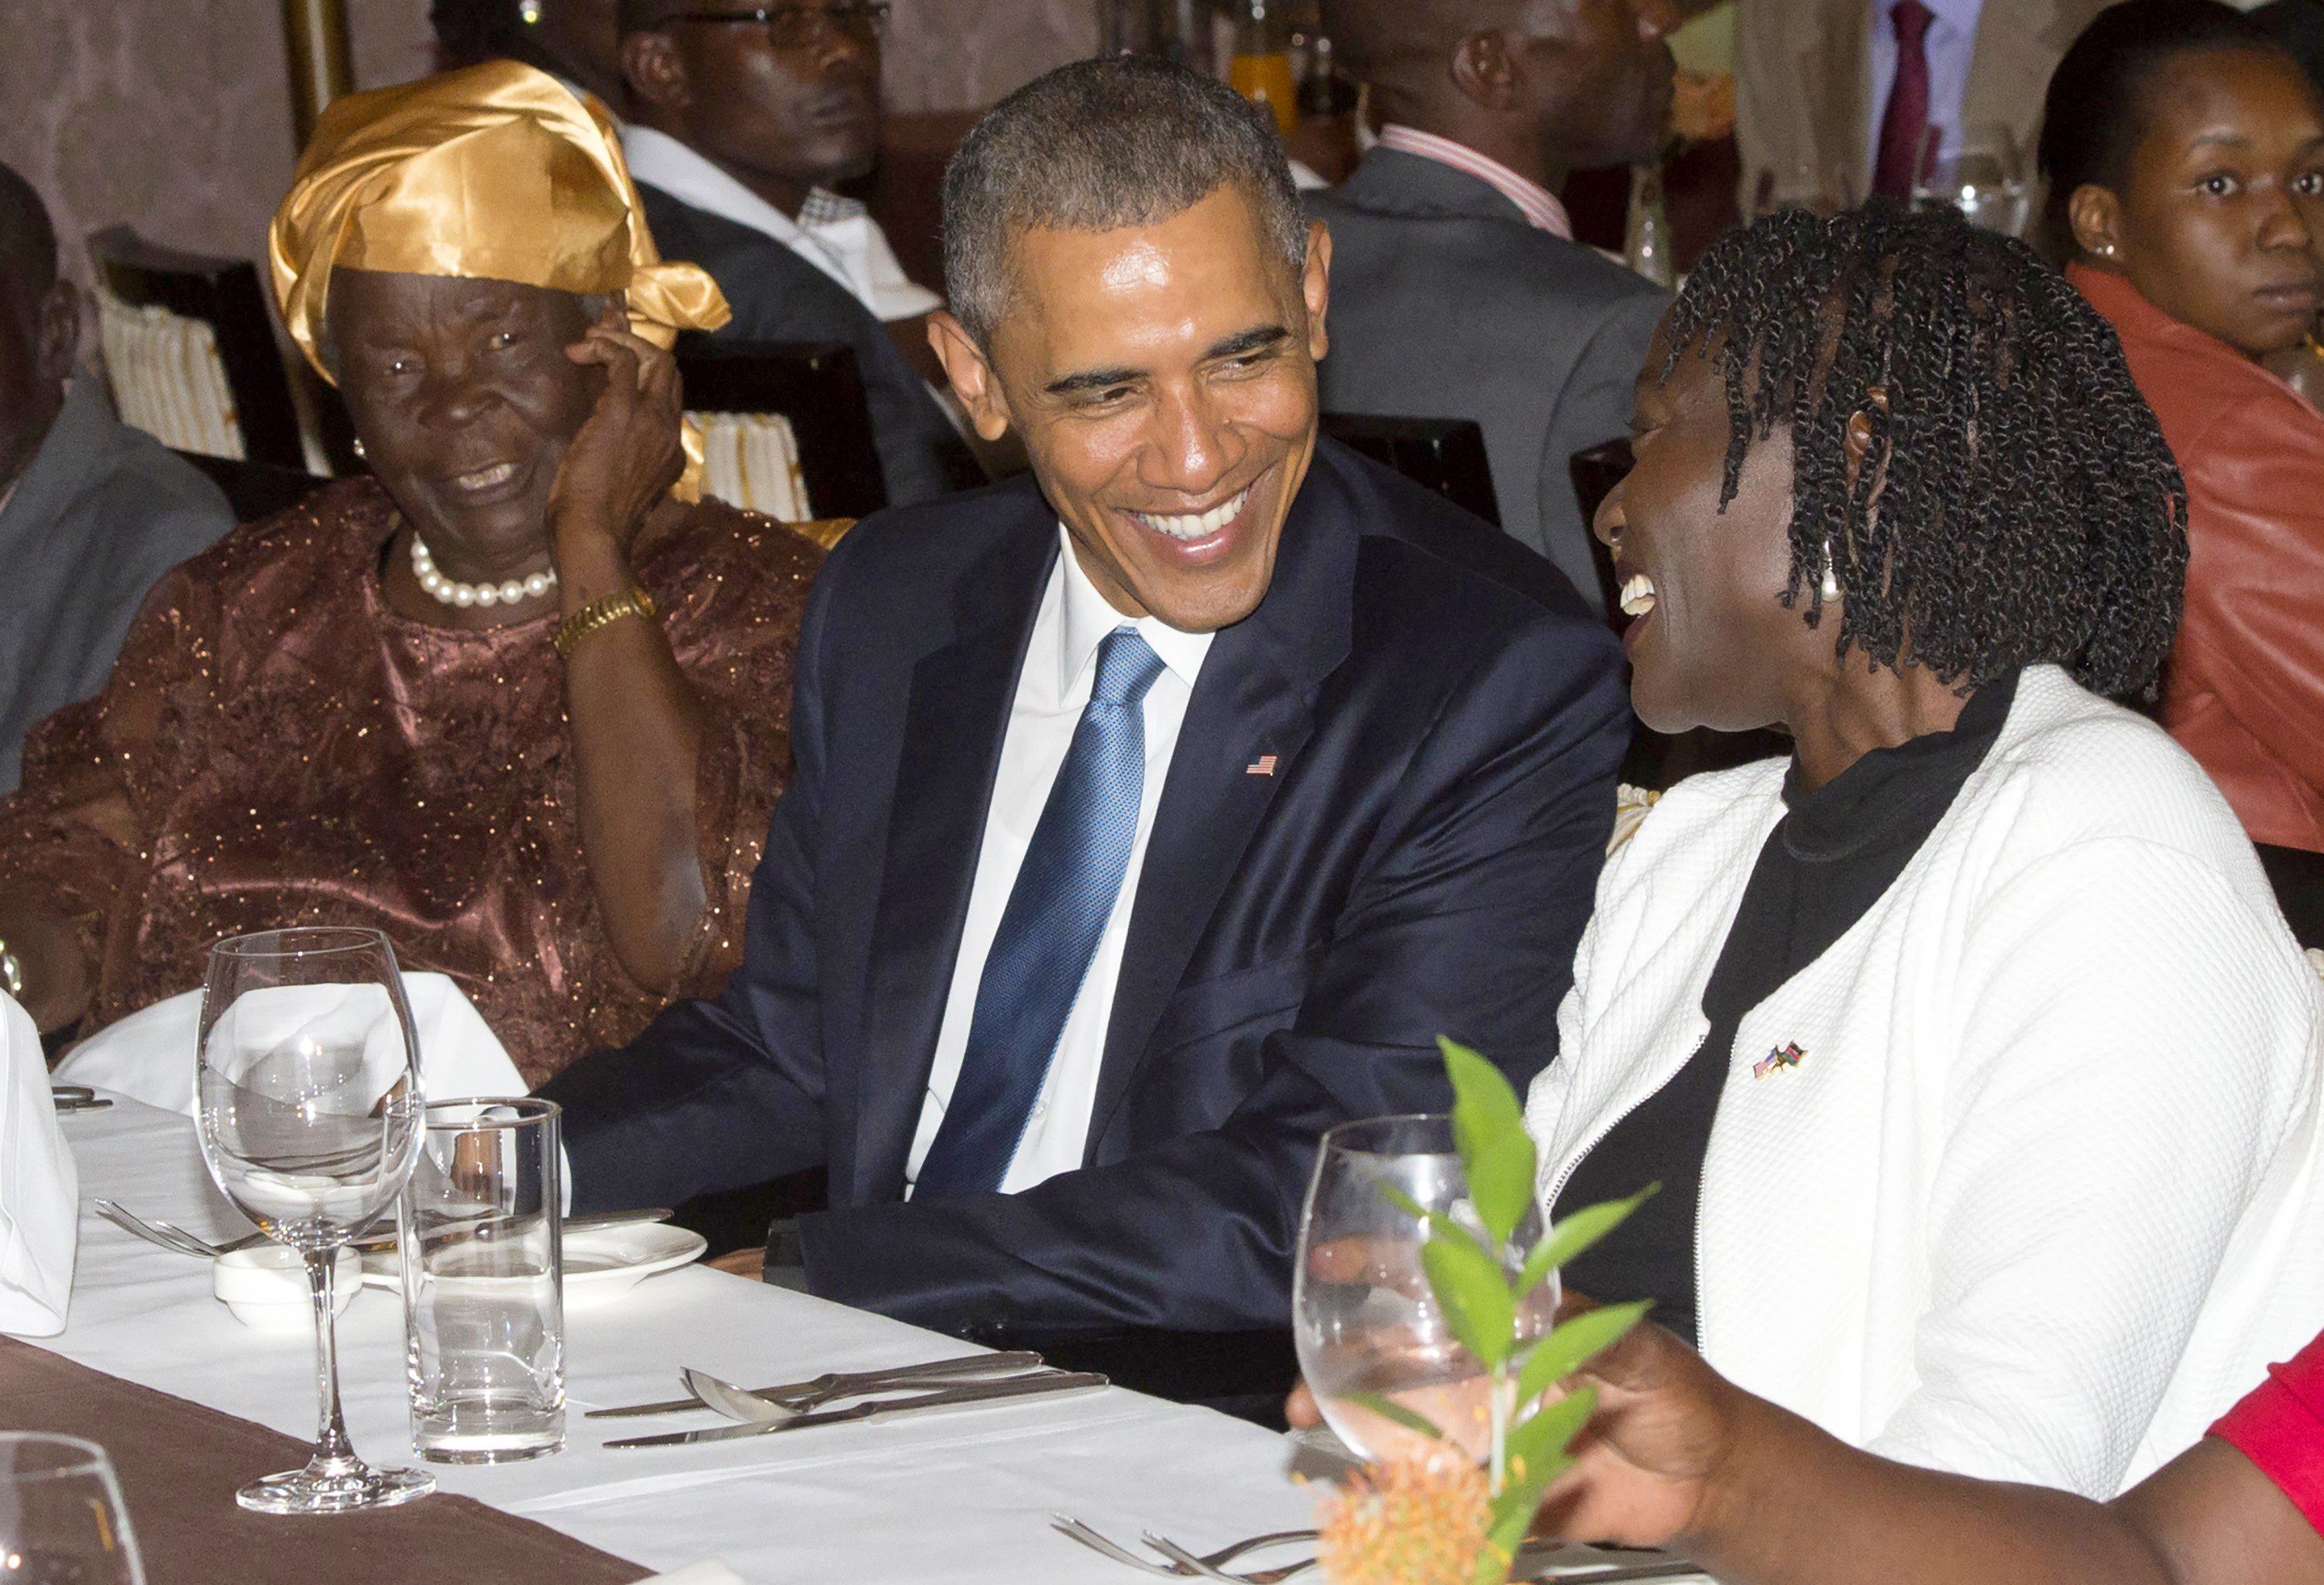 US President Barack Obama sits alongside his step-grandmother, Mama Sarah, left, and half-sister Auma Obama, right, during a gathering of family at his hotel in Nairobi on July 24, 2015.